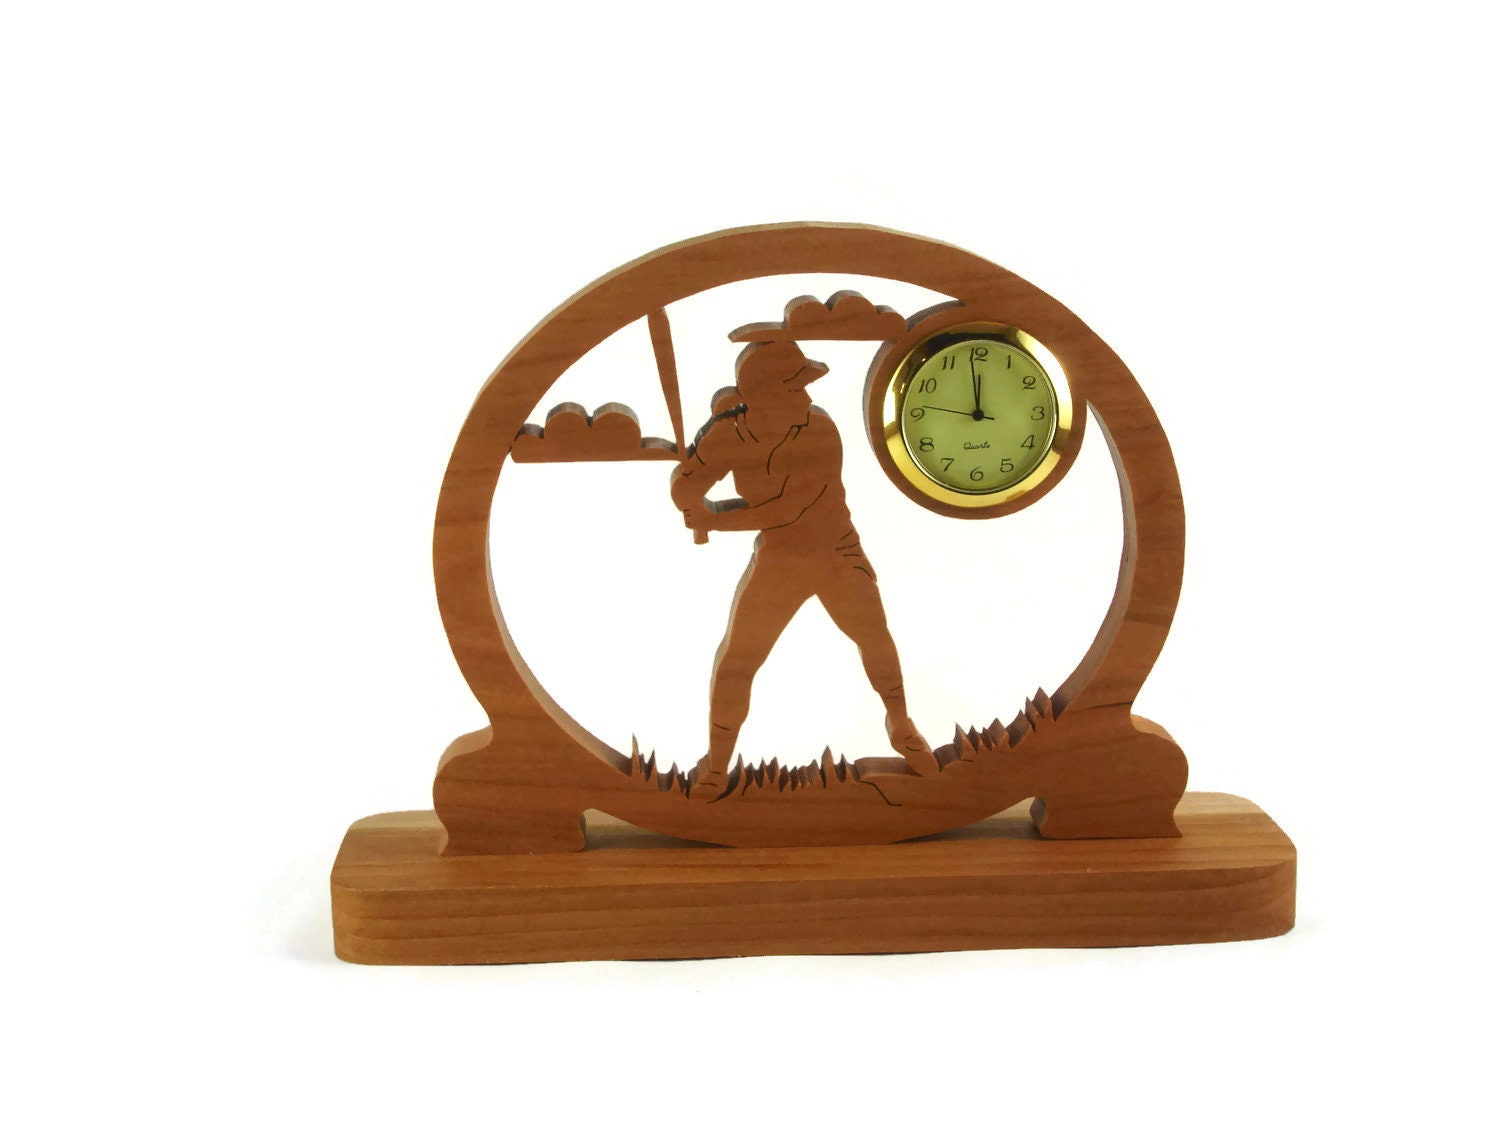 BaseBall Desk Clock Handcrafted From Cherry Wood By KevsKrafts NFB-1